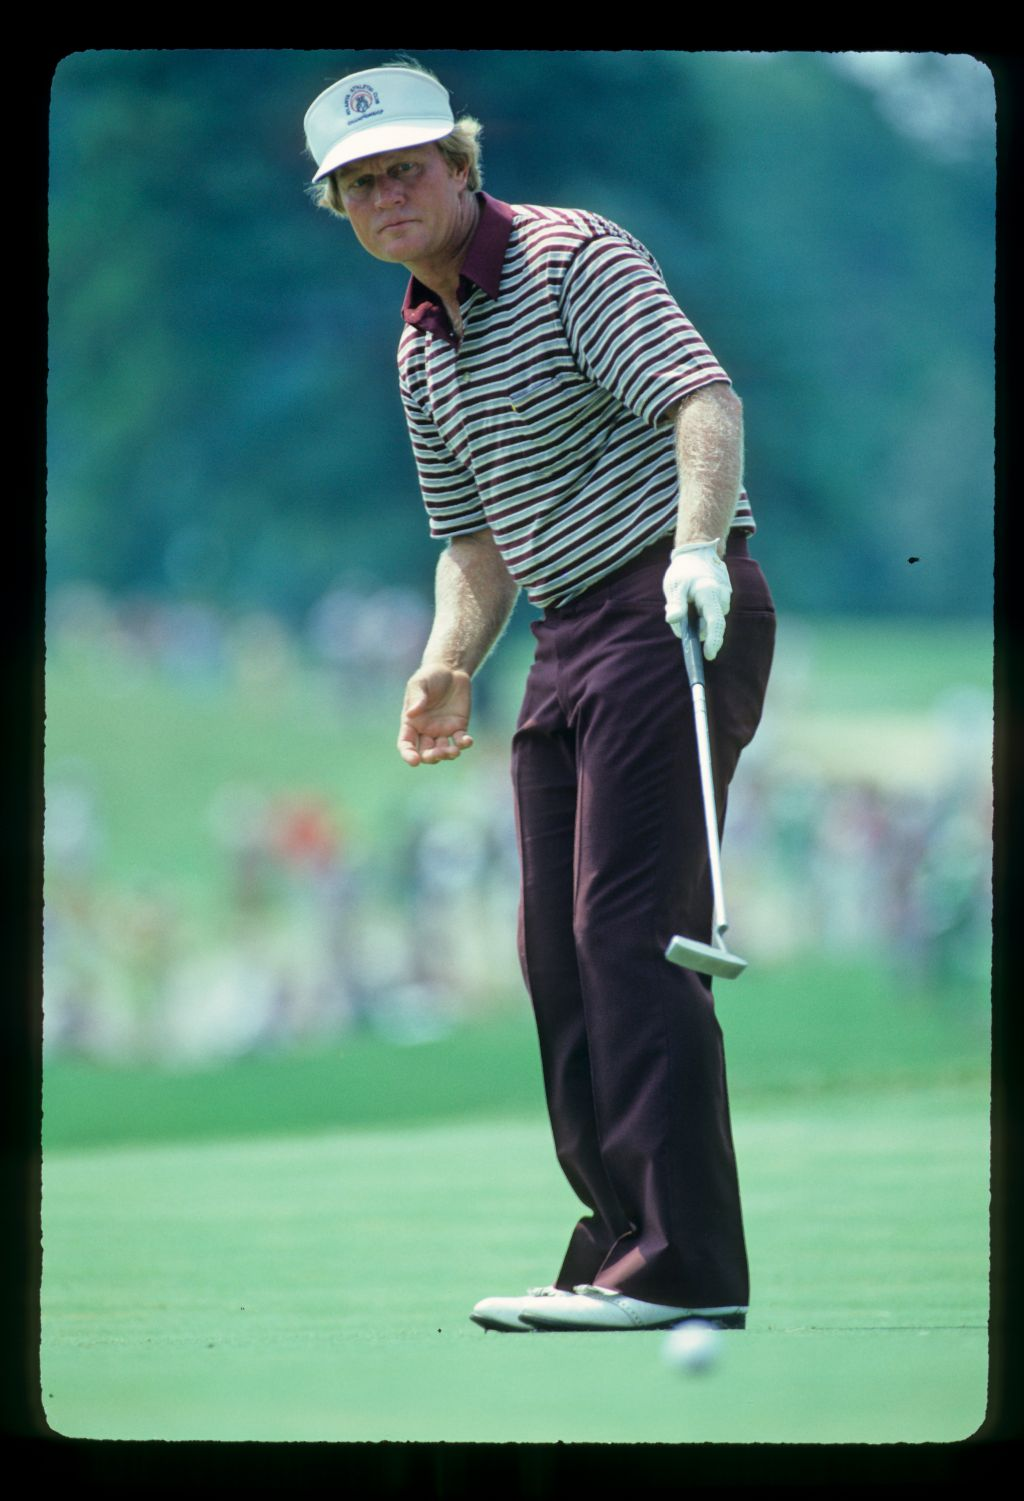 Jack Nicklaus pointing accusingly with his putter during the 1981 USPGA